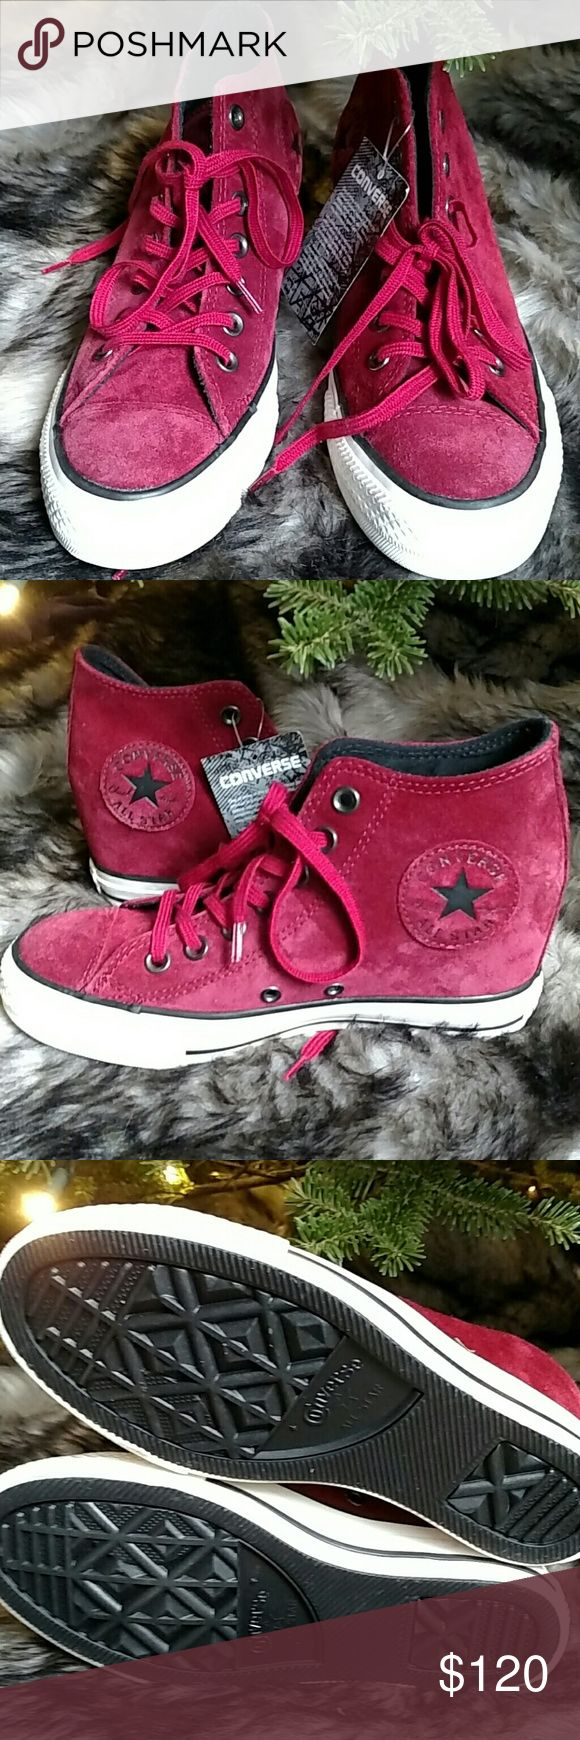 Nwt Converse Wedge Sneakers Beautiful red suede Converse hidden wedge sneakers. Never worn! Converse Shoes Sneakers